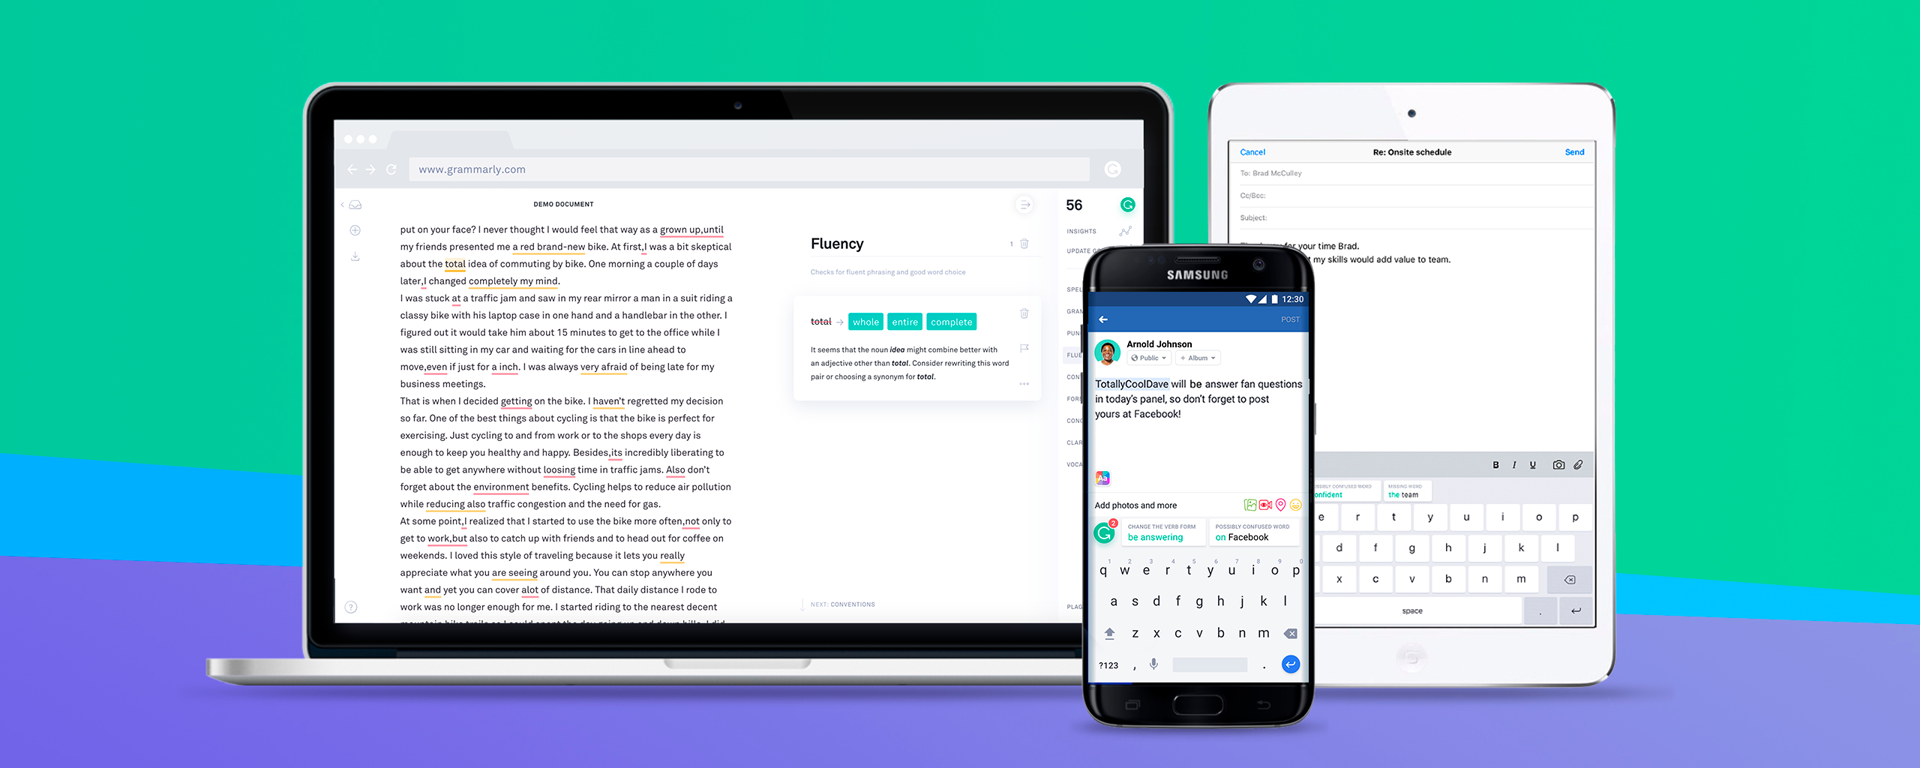 Grammarly Proofreading Software Features Video